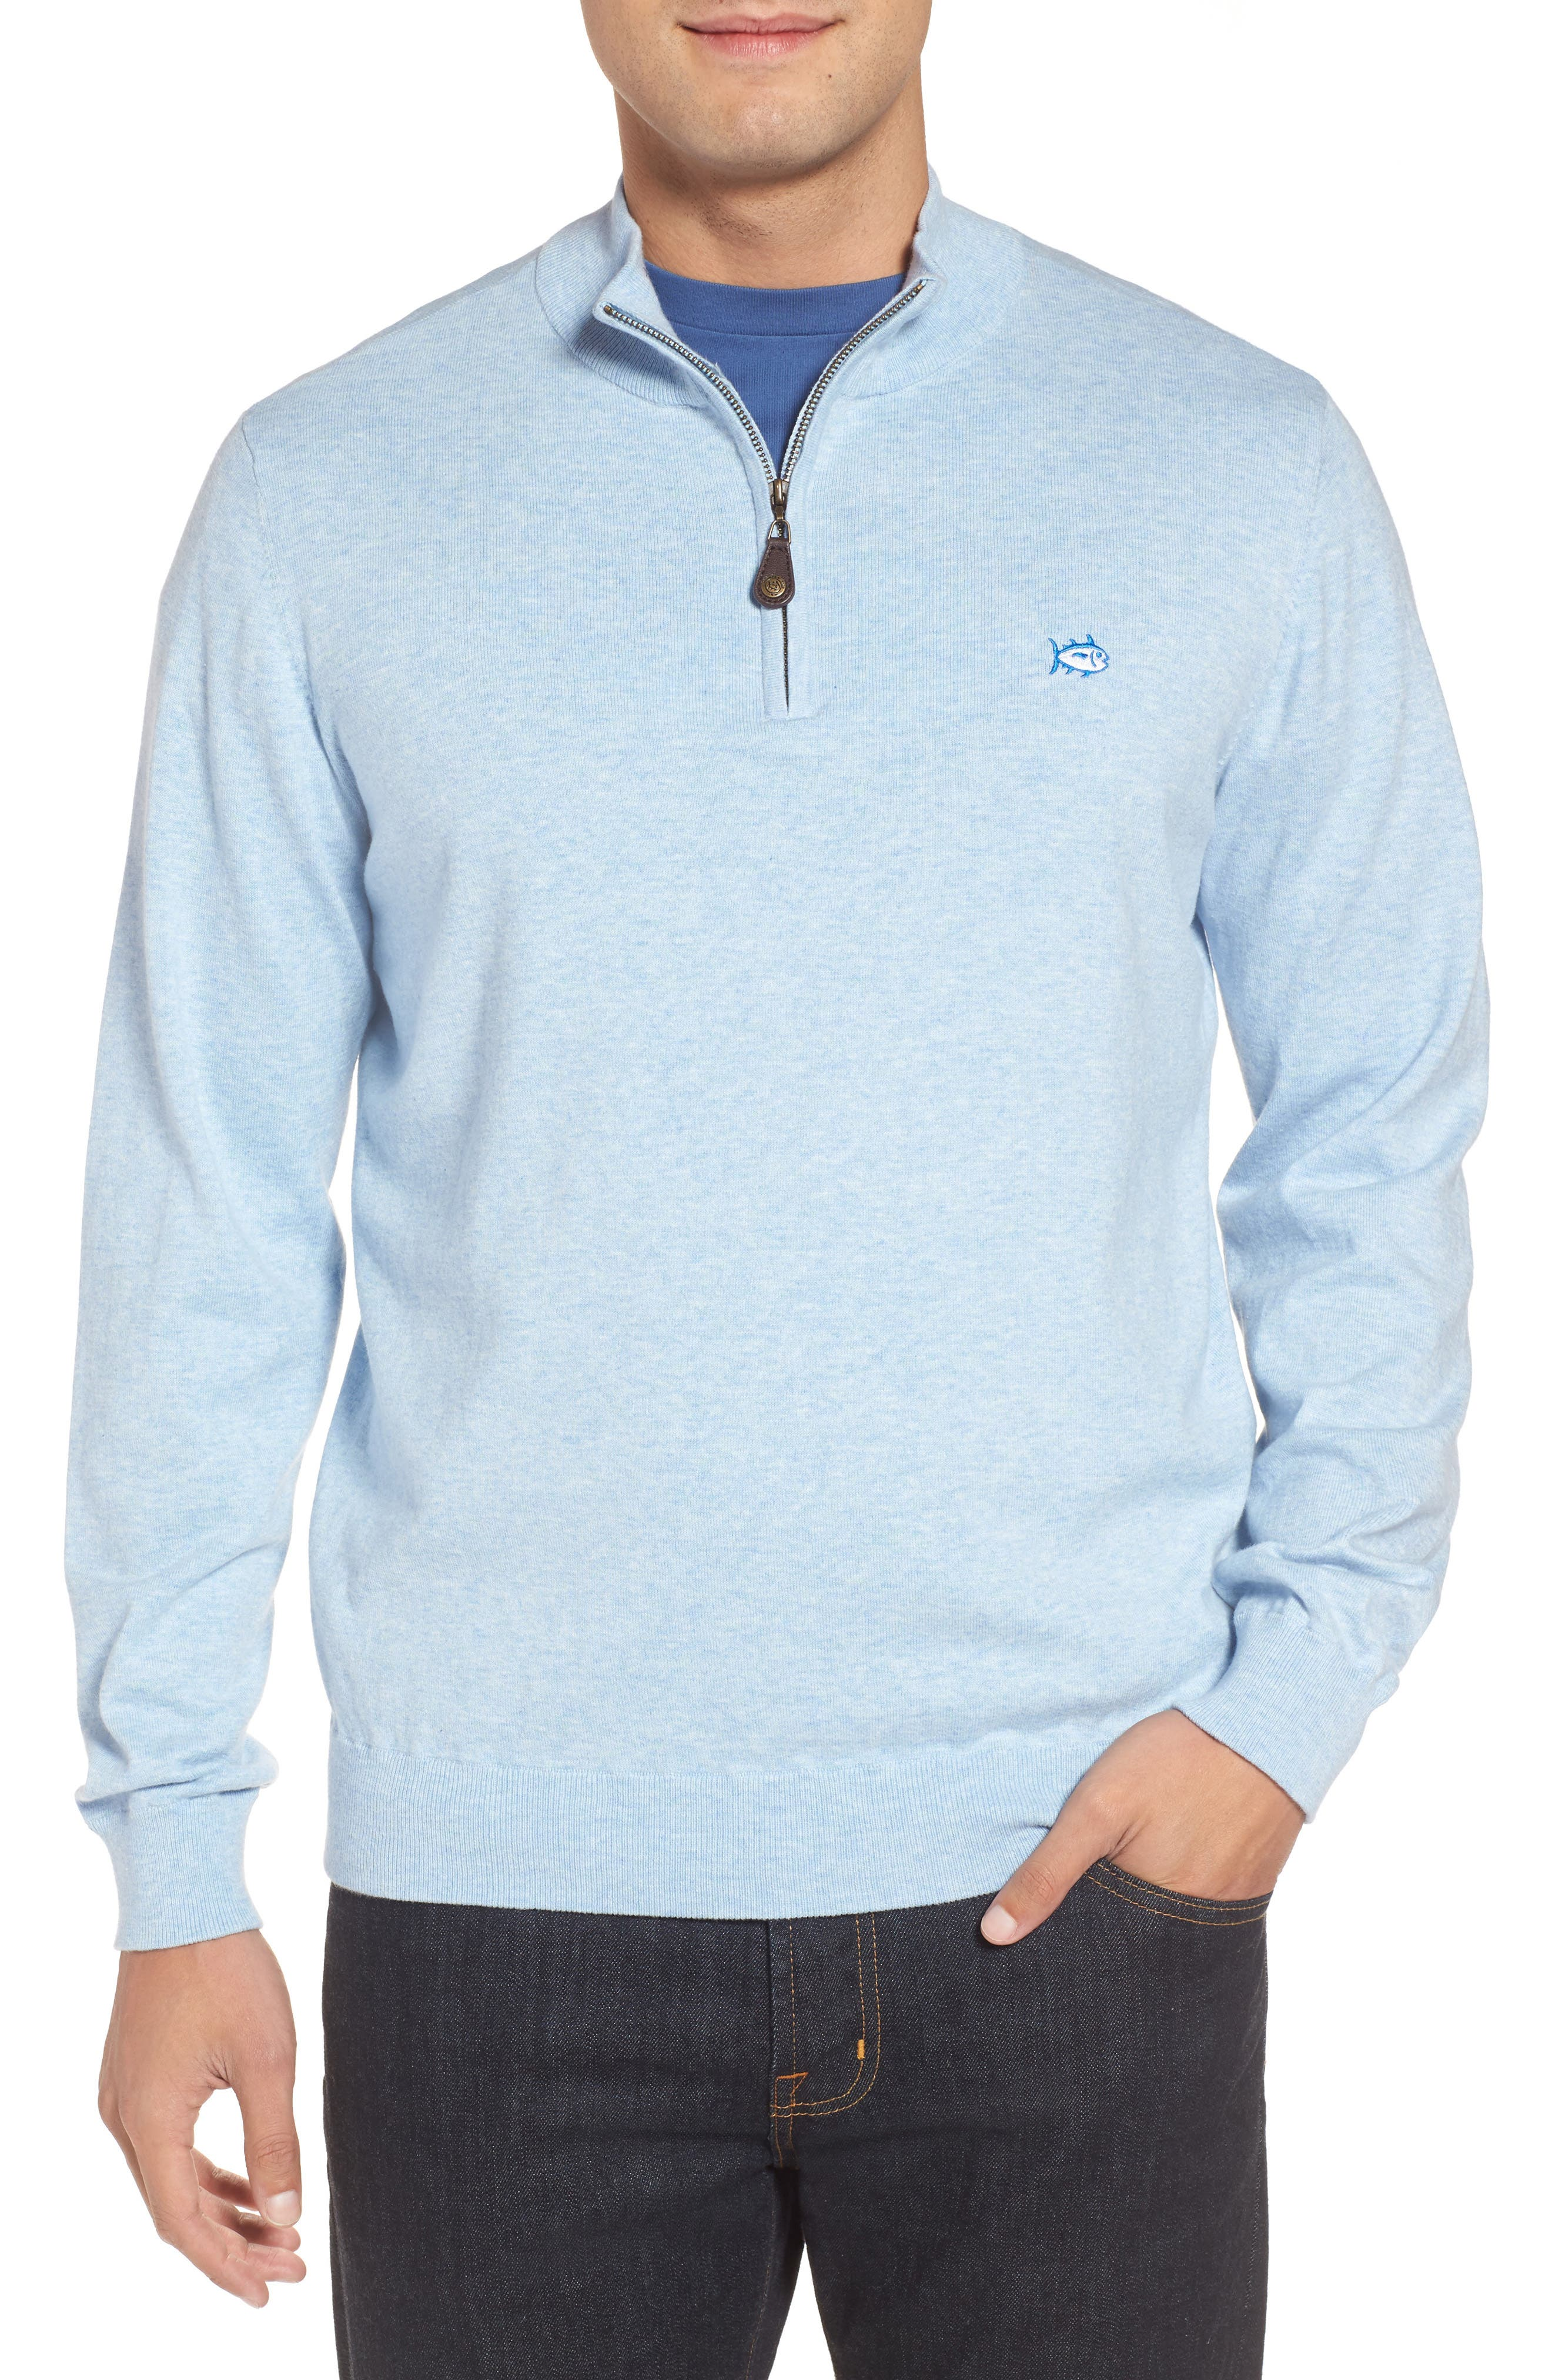 Marina Cay Quarter Zip Pullover,                             Main thumbnail 1, color,                             OCEAN CHANNEL